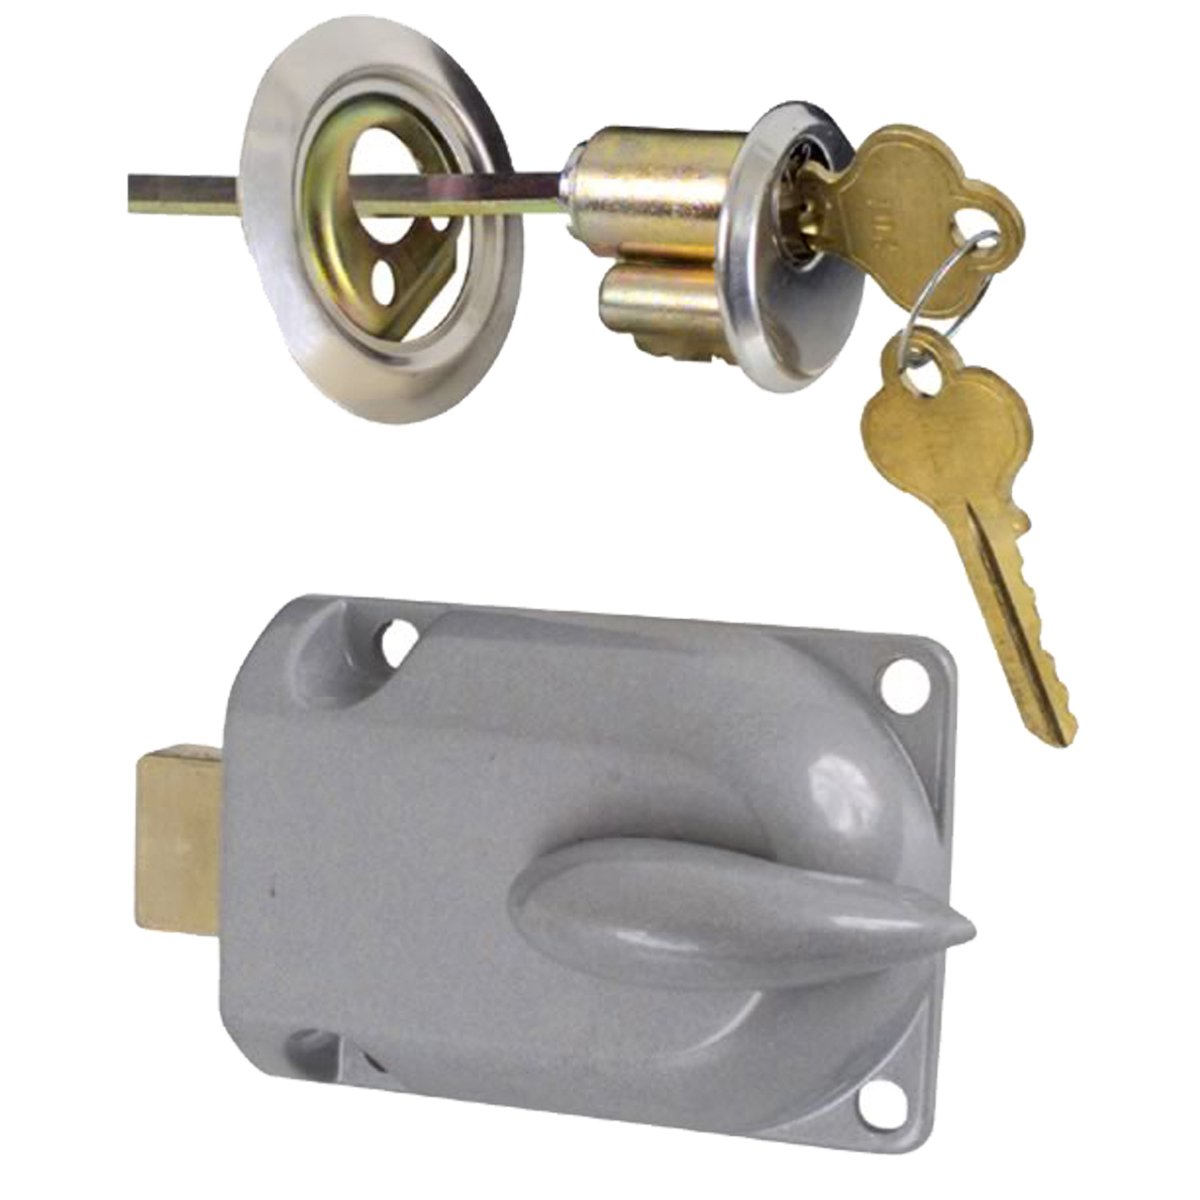 Get Quotations · Ideal Security Inc. SK7160 Garage Door Lock, Zinc Plated